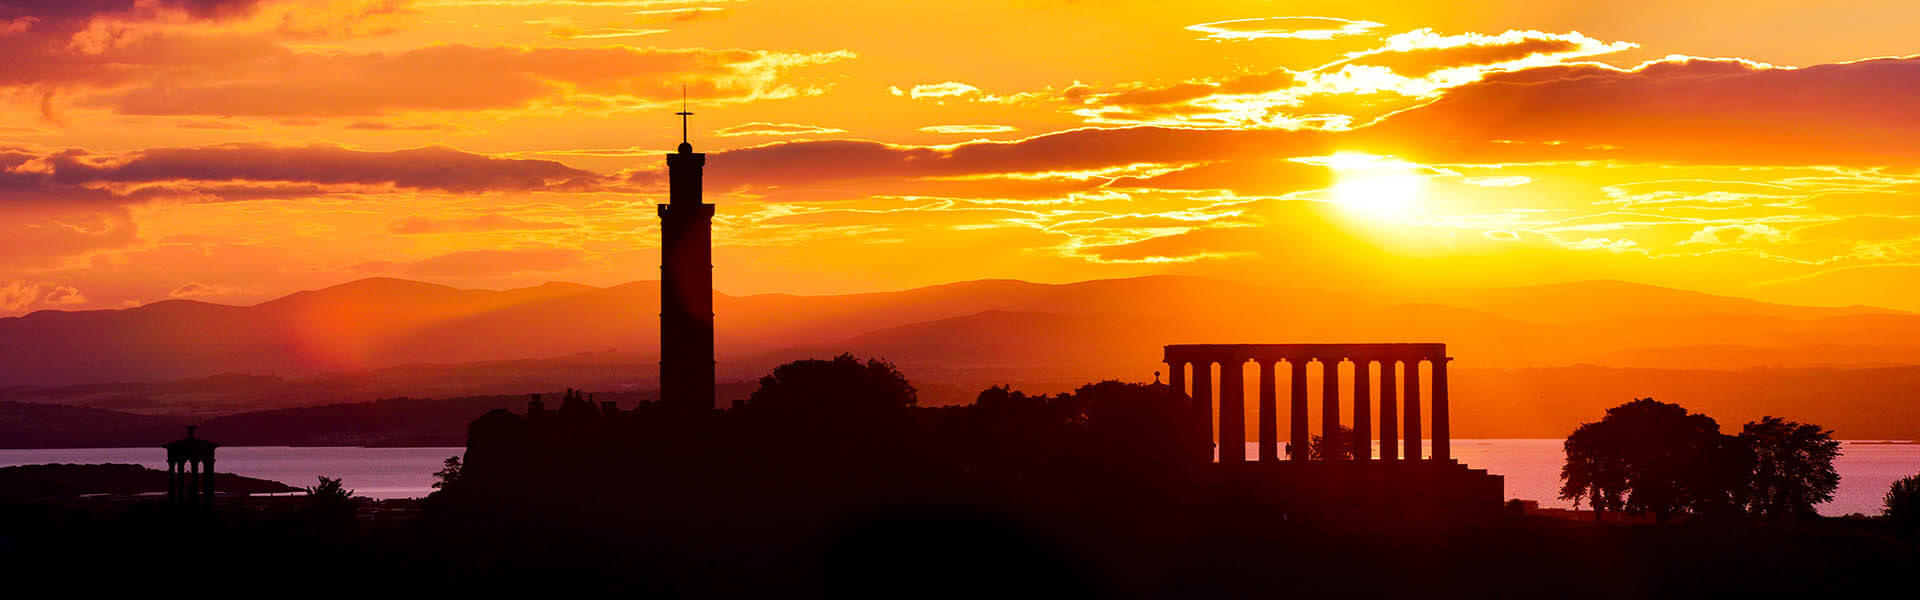 Calton Hill at Sunset - Spectacular Edinburgh Photography